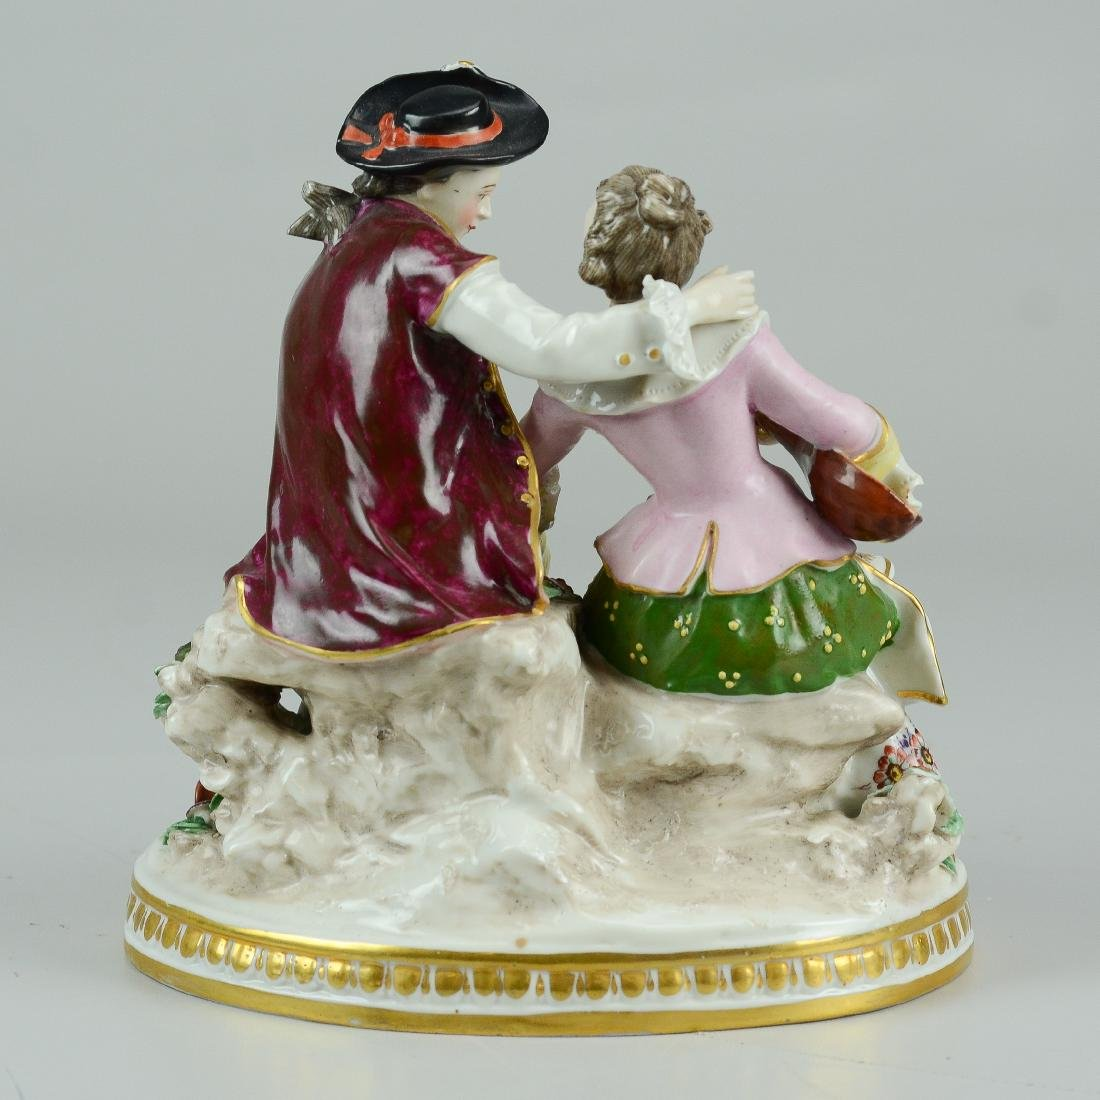 German porcelain courting couple figurine - 2